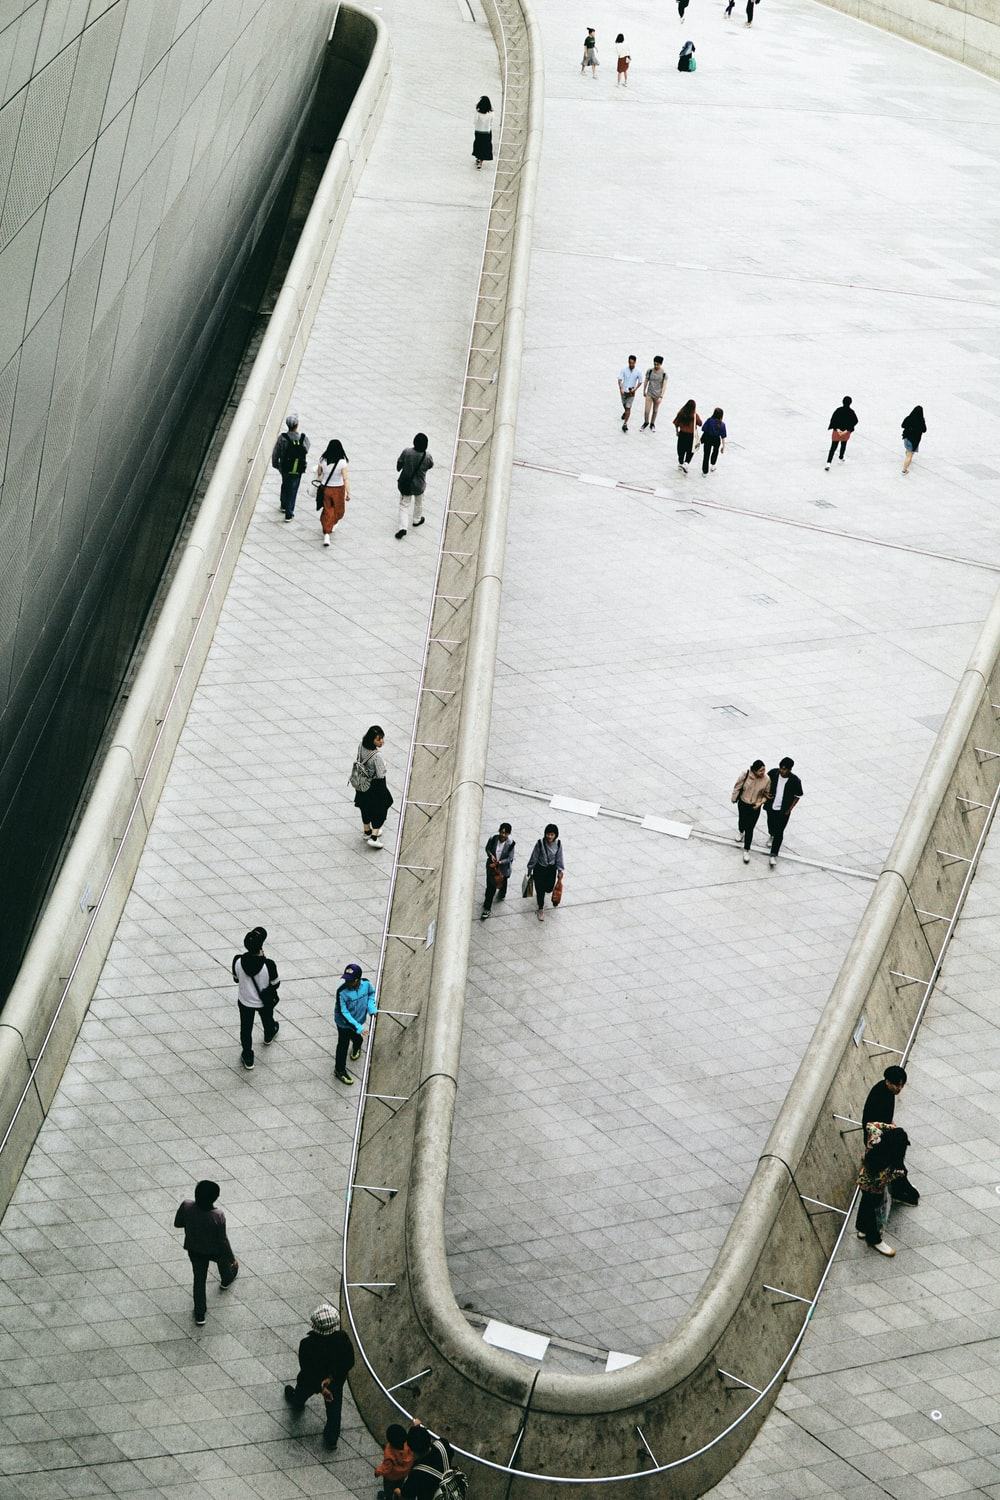 people walking on ice field during daytime